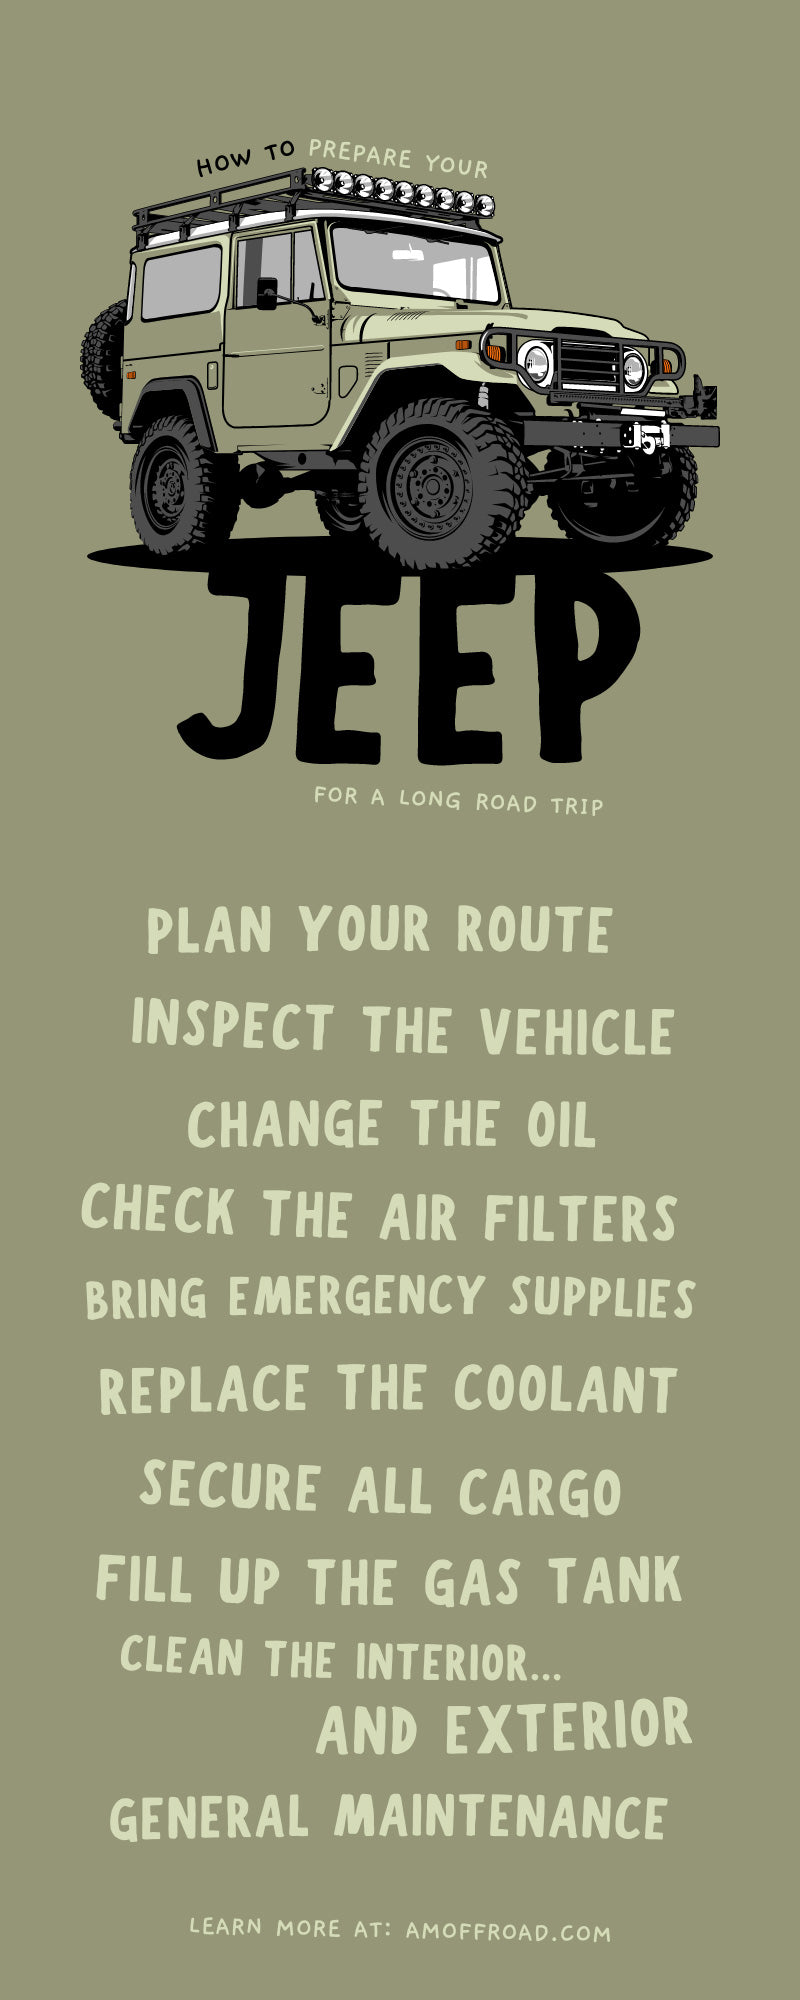 How To Prepare Your Jeep for a Long Road Trip